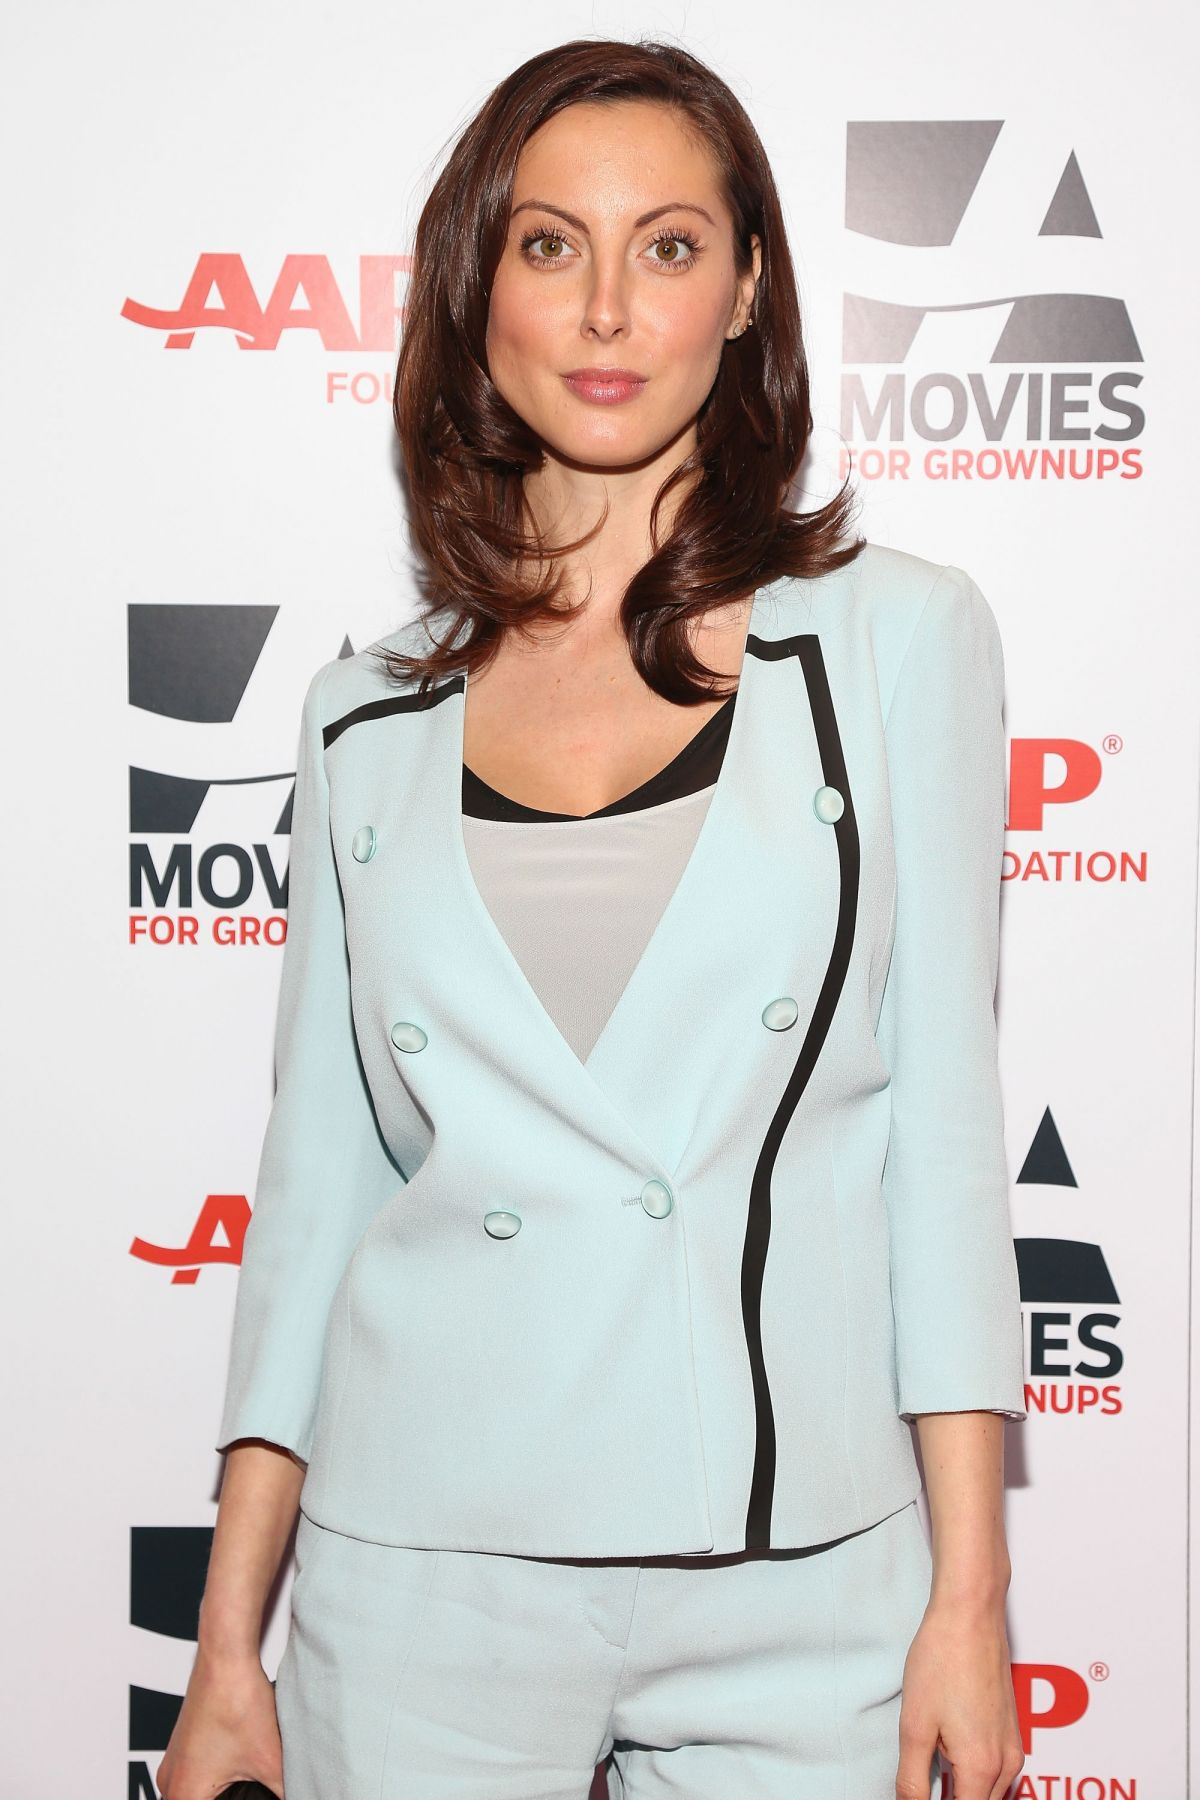 EVA AMURRI at 13th Annual Aarp's Movies for Grownups Awards in Beverly Hills